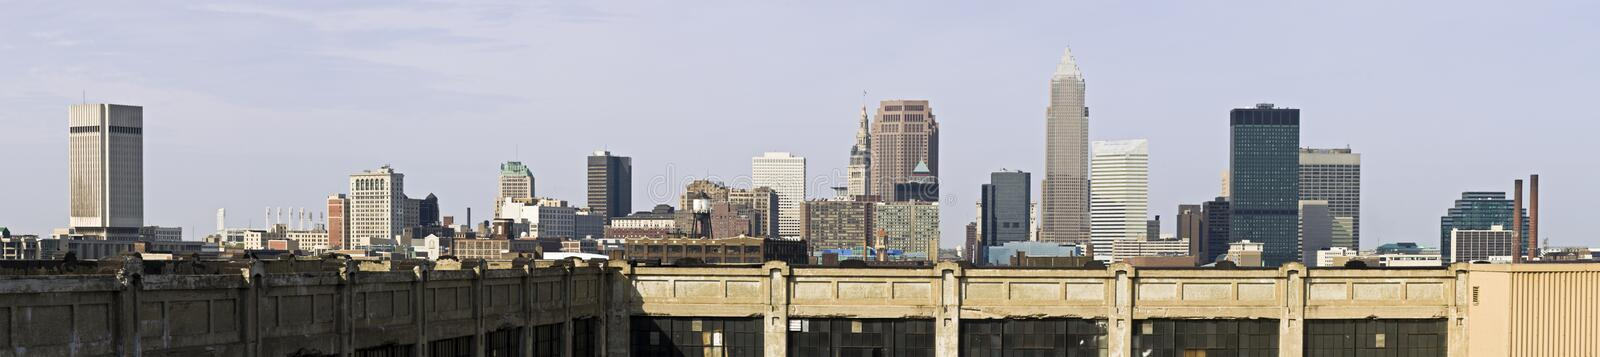 XXXL Panorama Of Downtown Cleveland Royalty Free Stock Photography